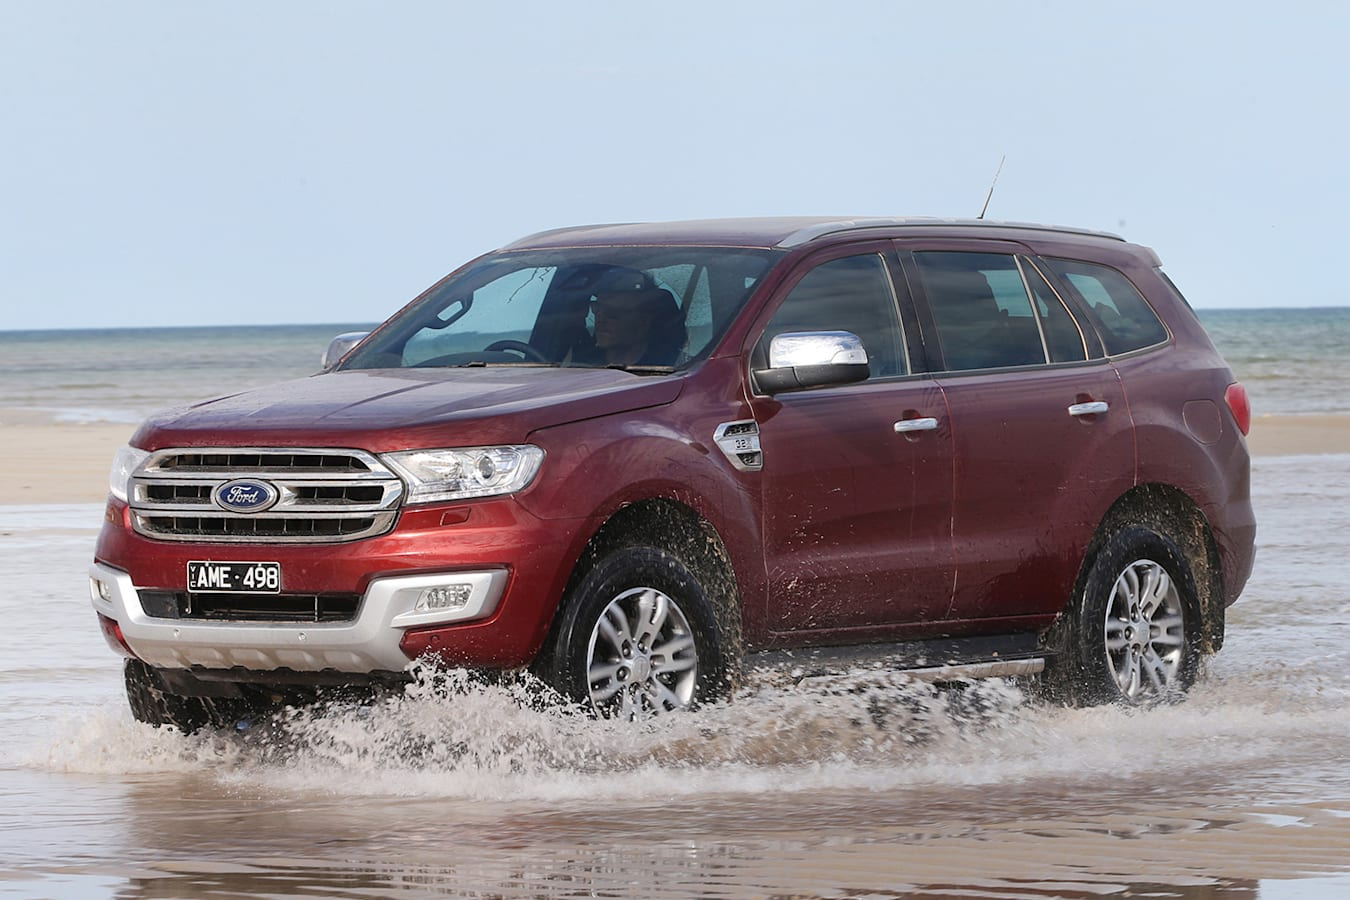 2018 Ford Everest water